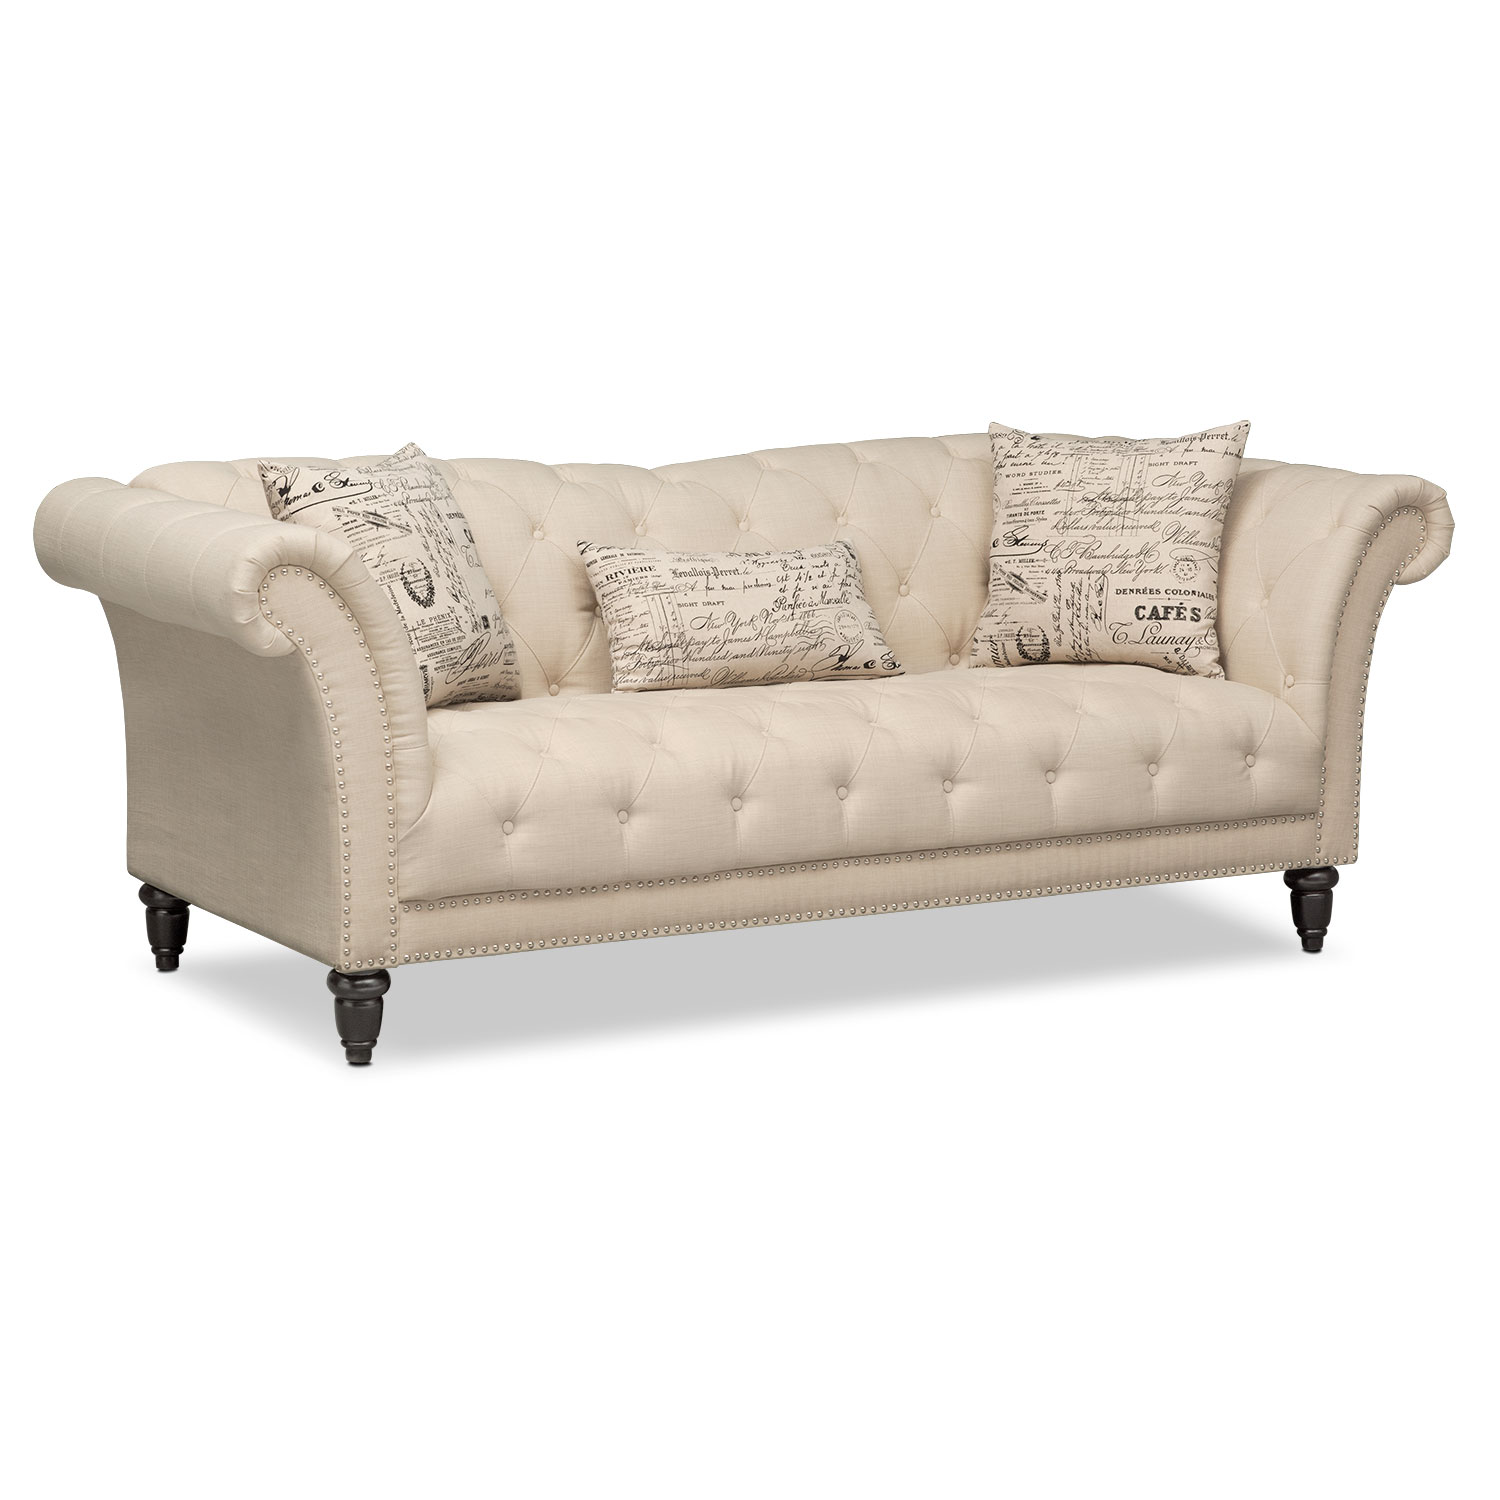 Marisol sofa loveseat and armless chair set